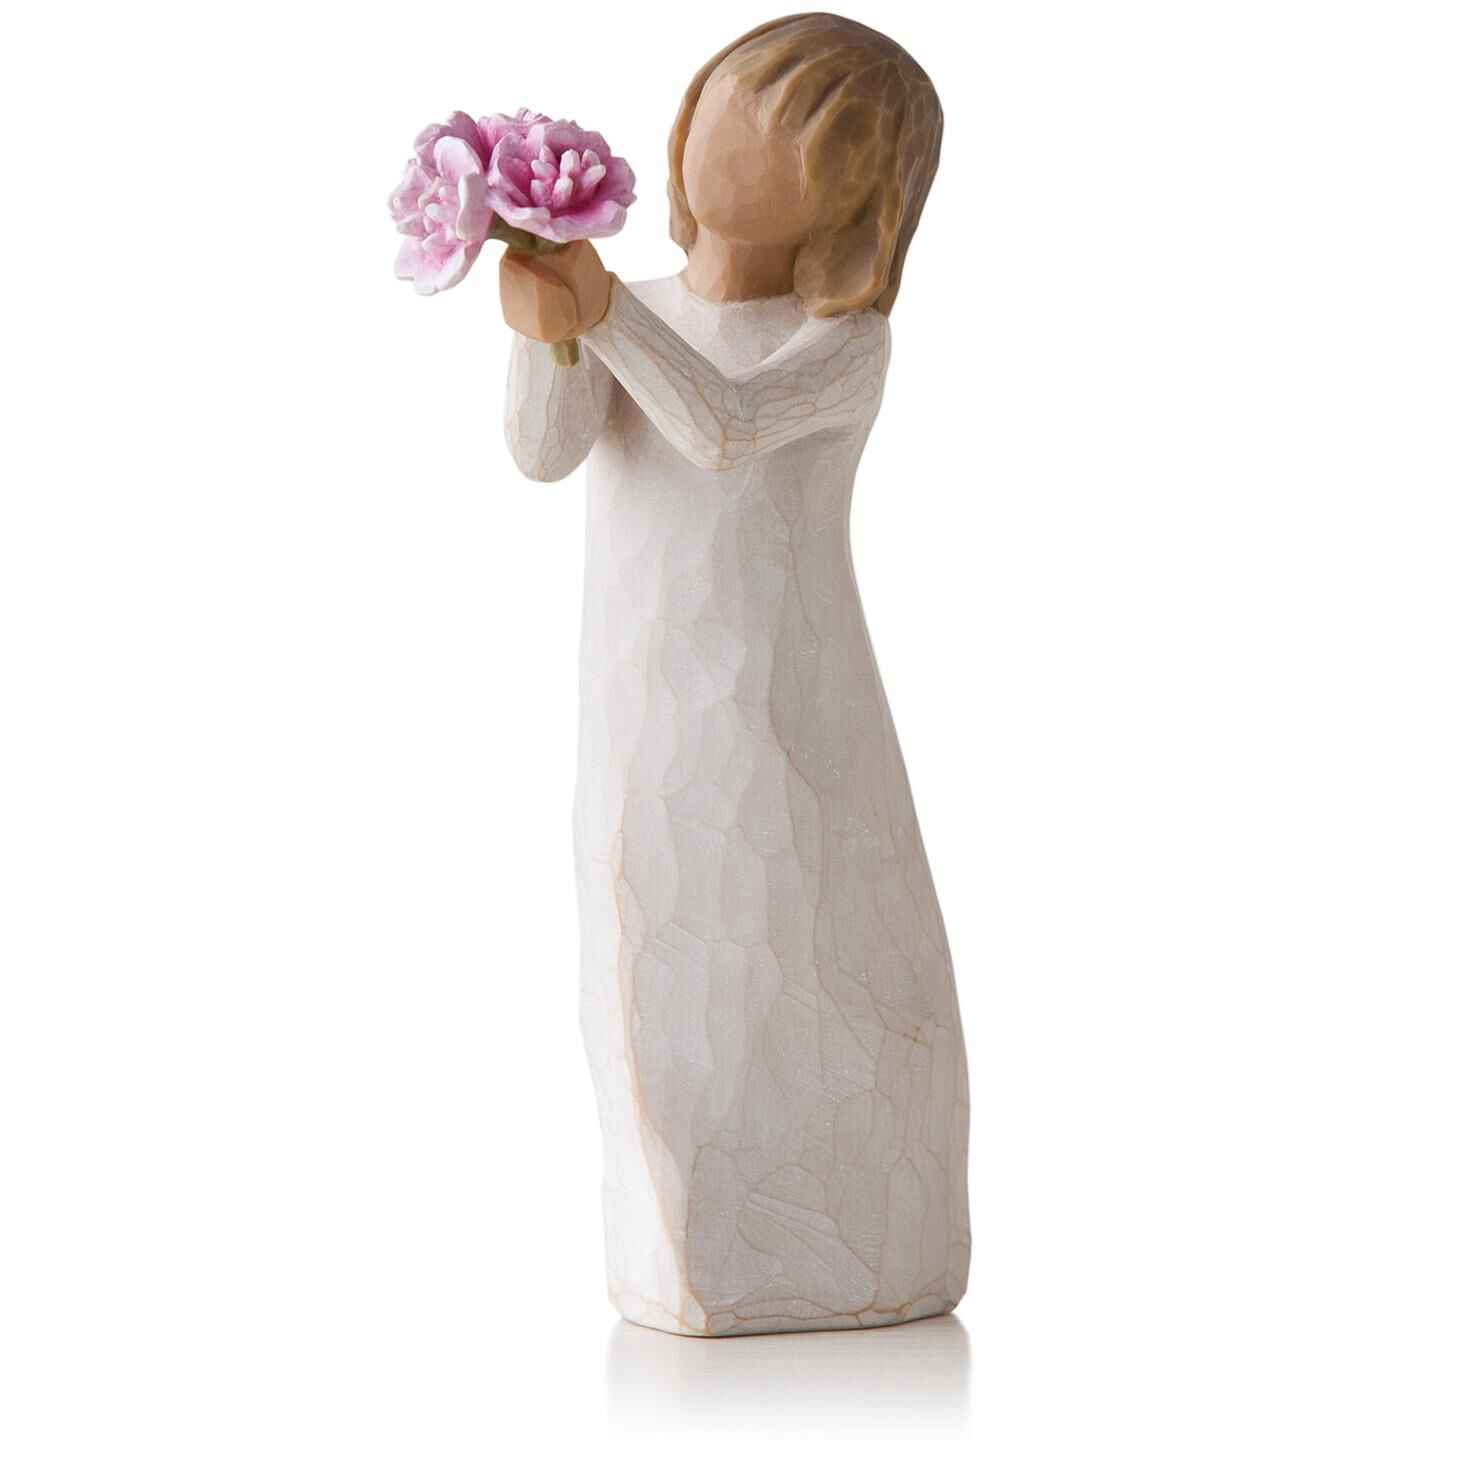 willow tree pink peonies thank you flowers figurine. Black Bedroom Furniture Sets. Home Design Ideas